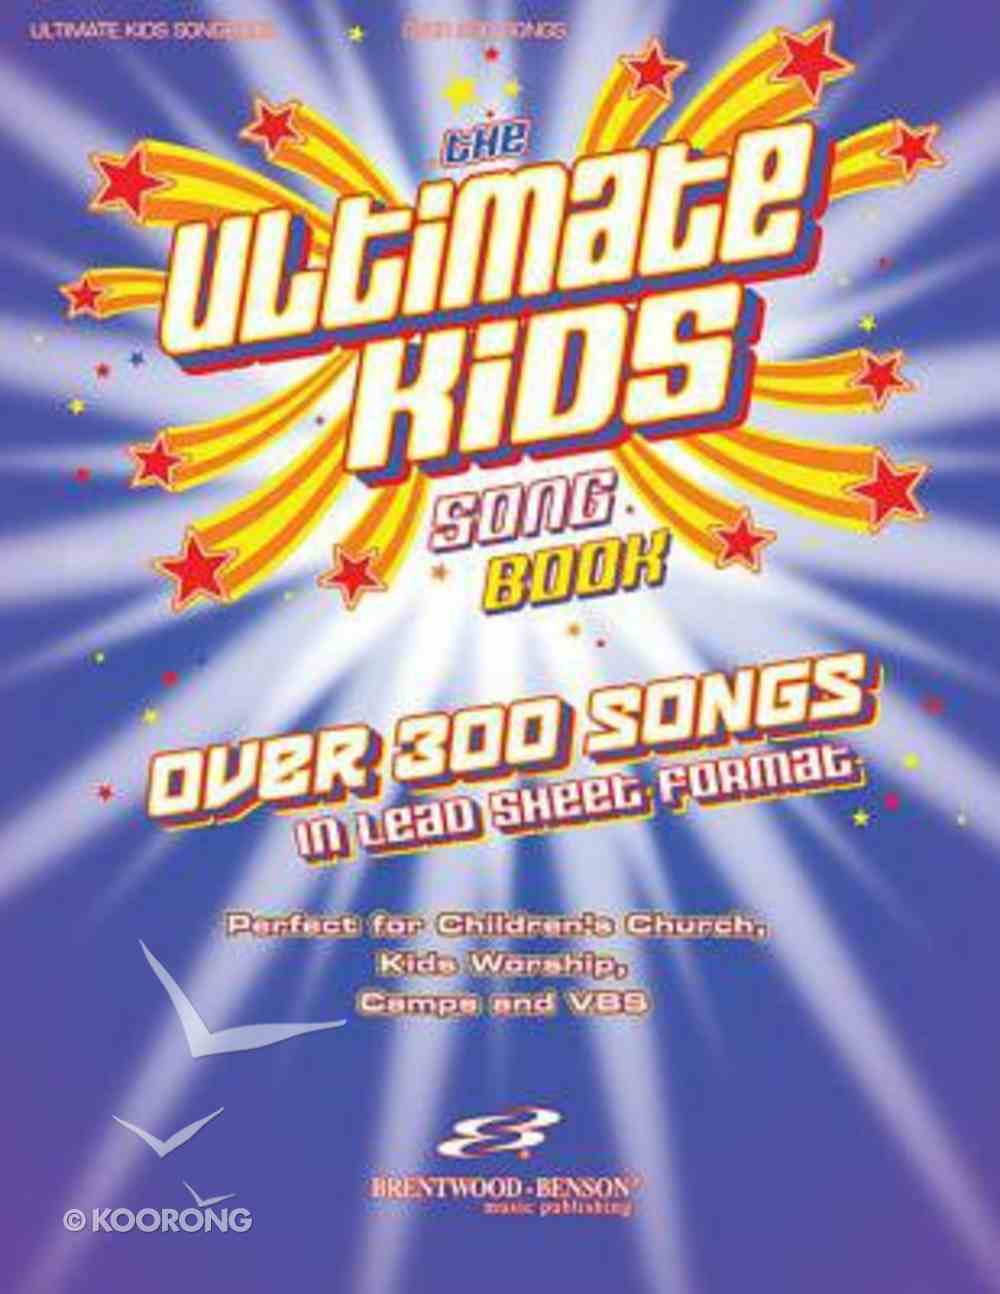 The Ultimate Kids Songbook (Lead Sheet Format) Spiral